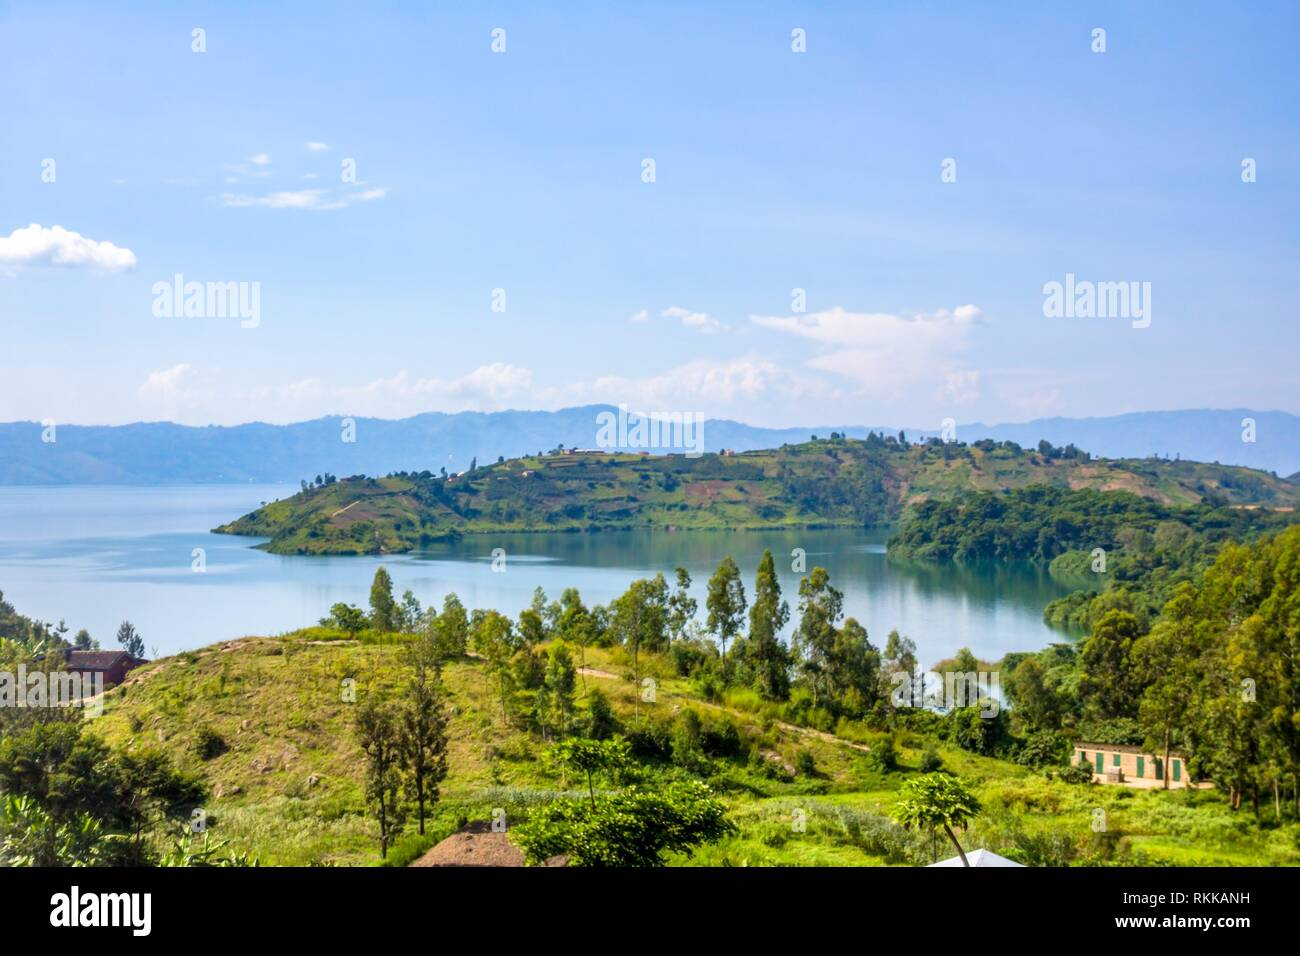 Lake Kivu, one of the largest of the African Great Lakes, In Rwanda. - Stock Image